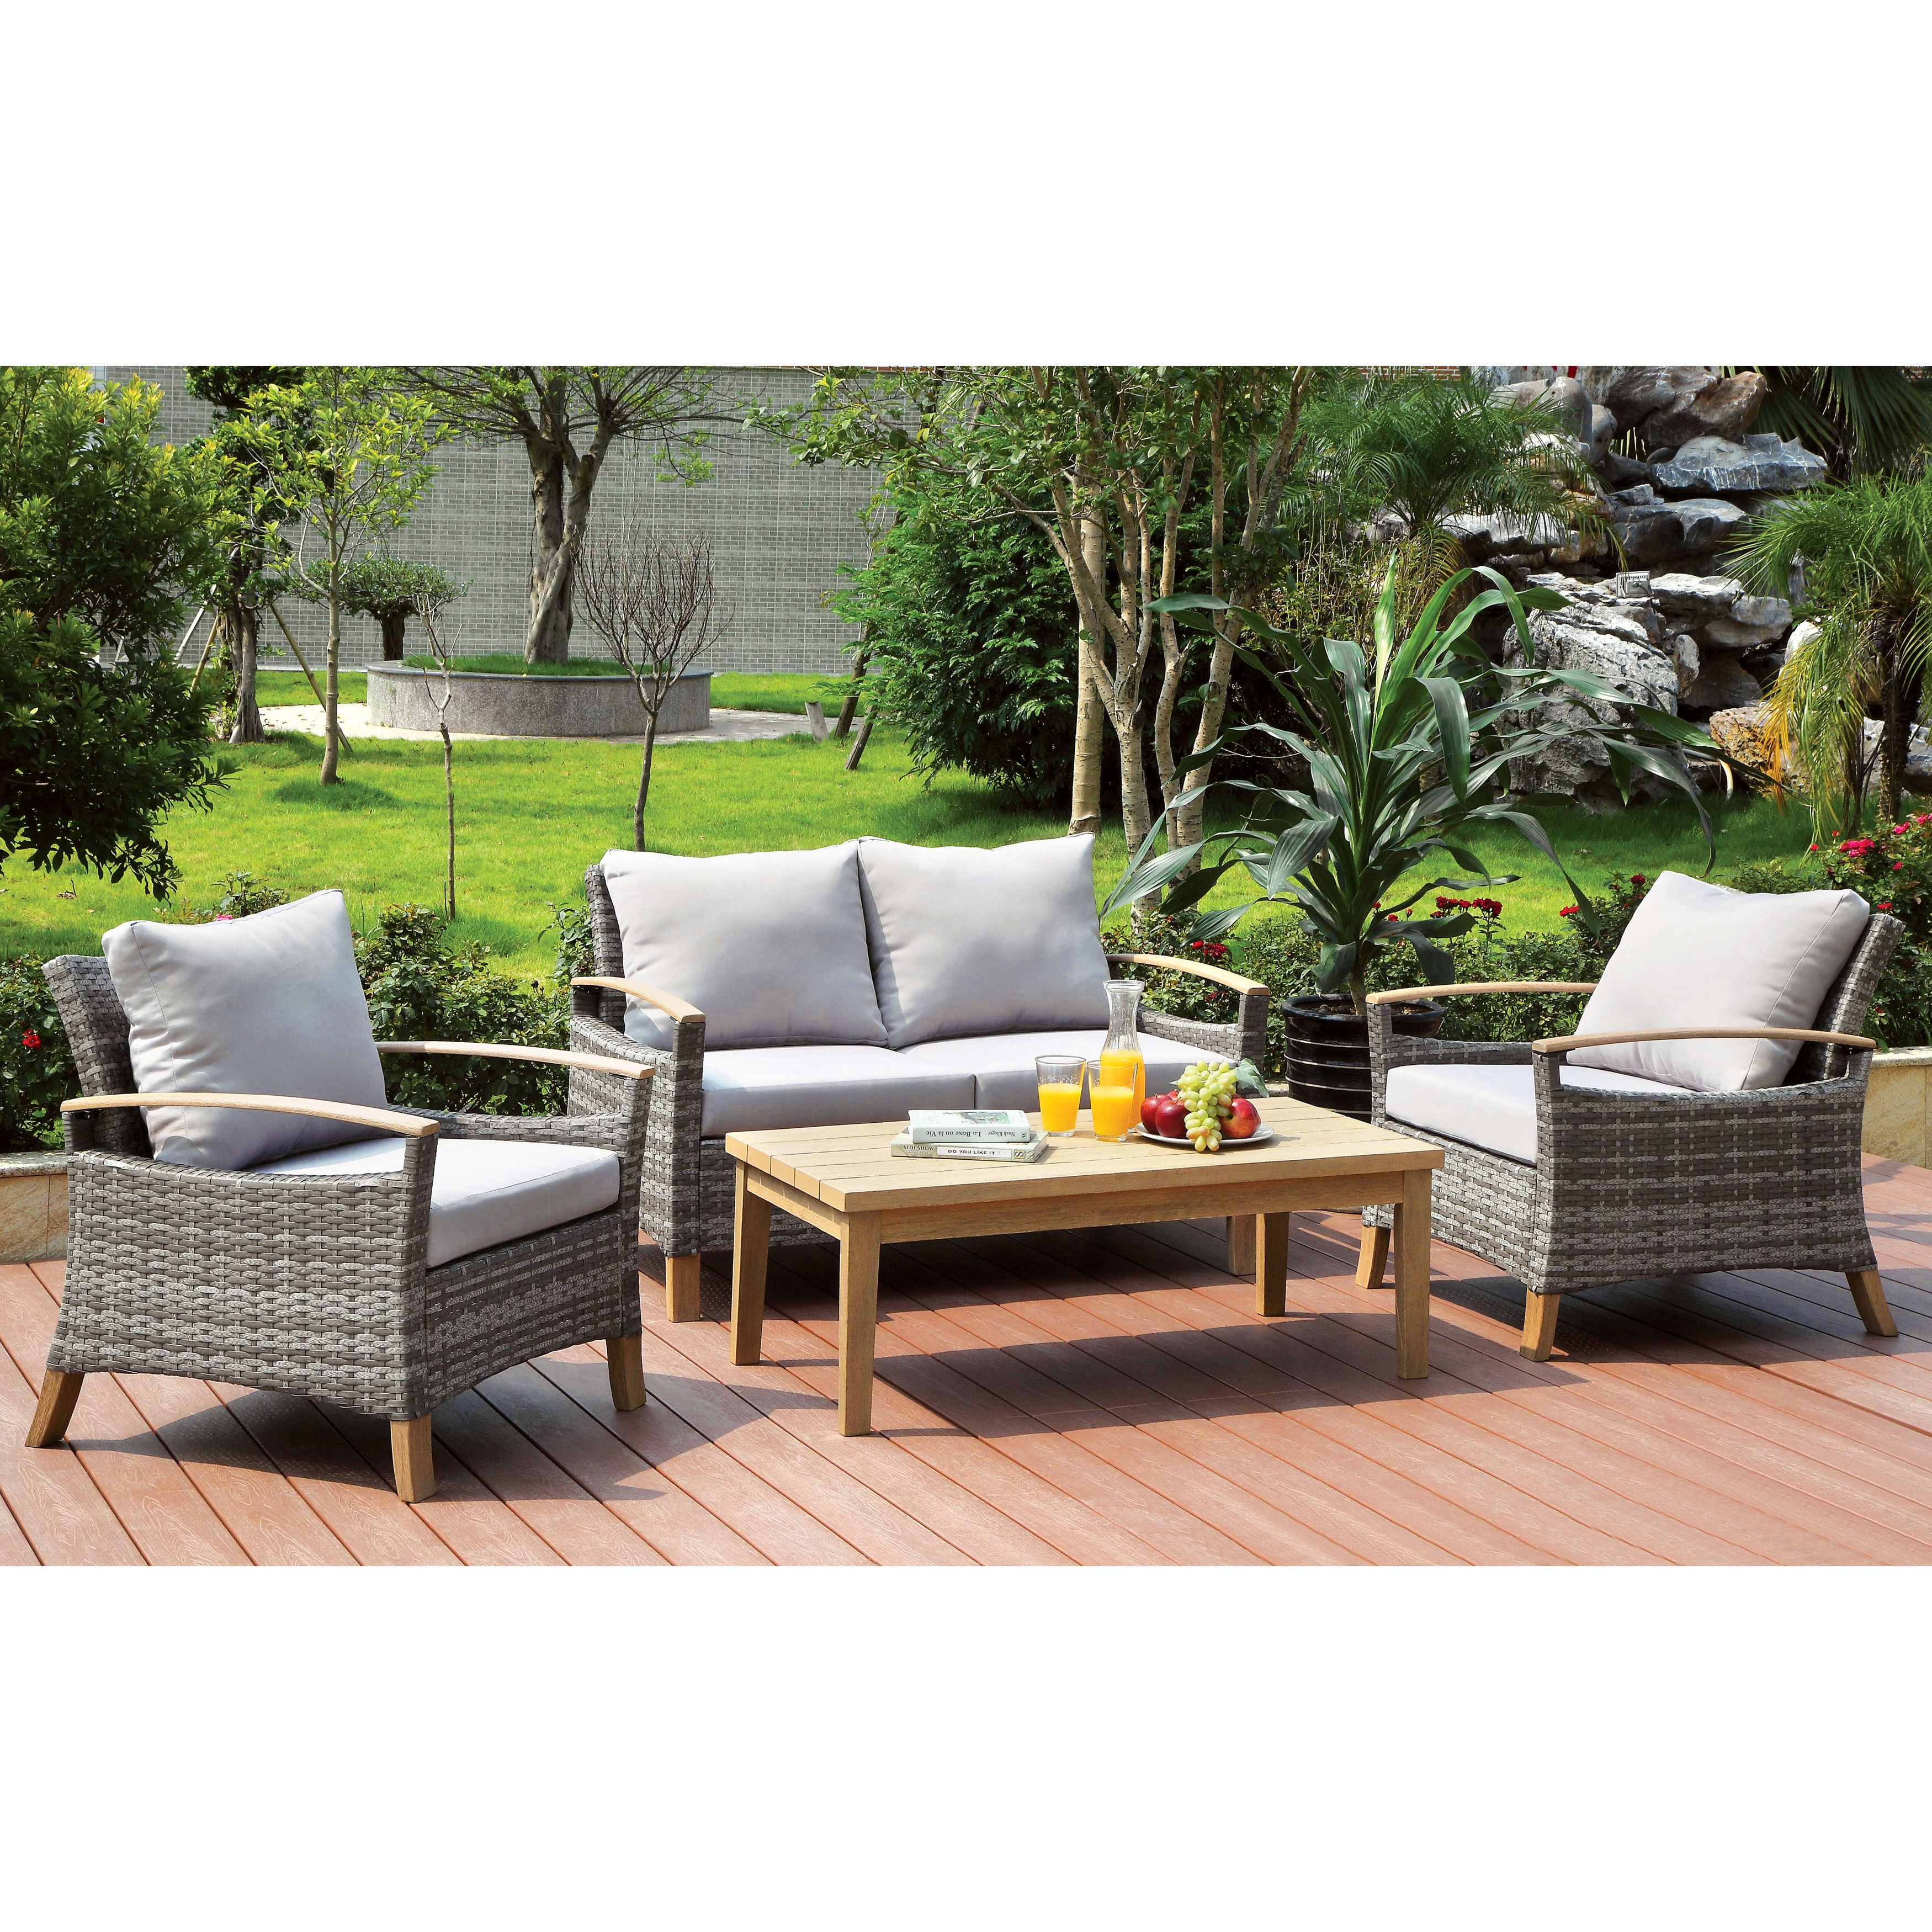 outdoor san of chairs umbrellas contemporary diego furniture new and table patio beautiful best